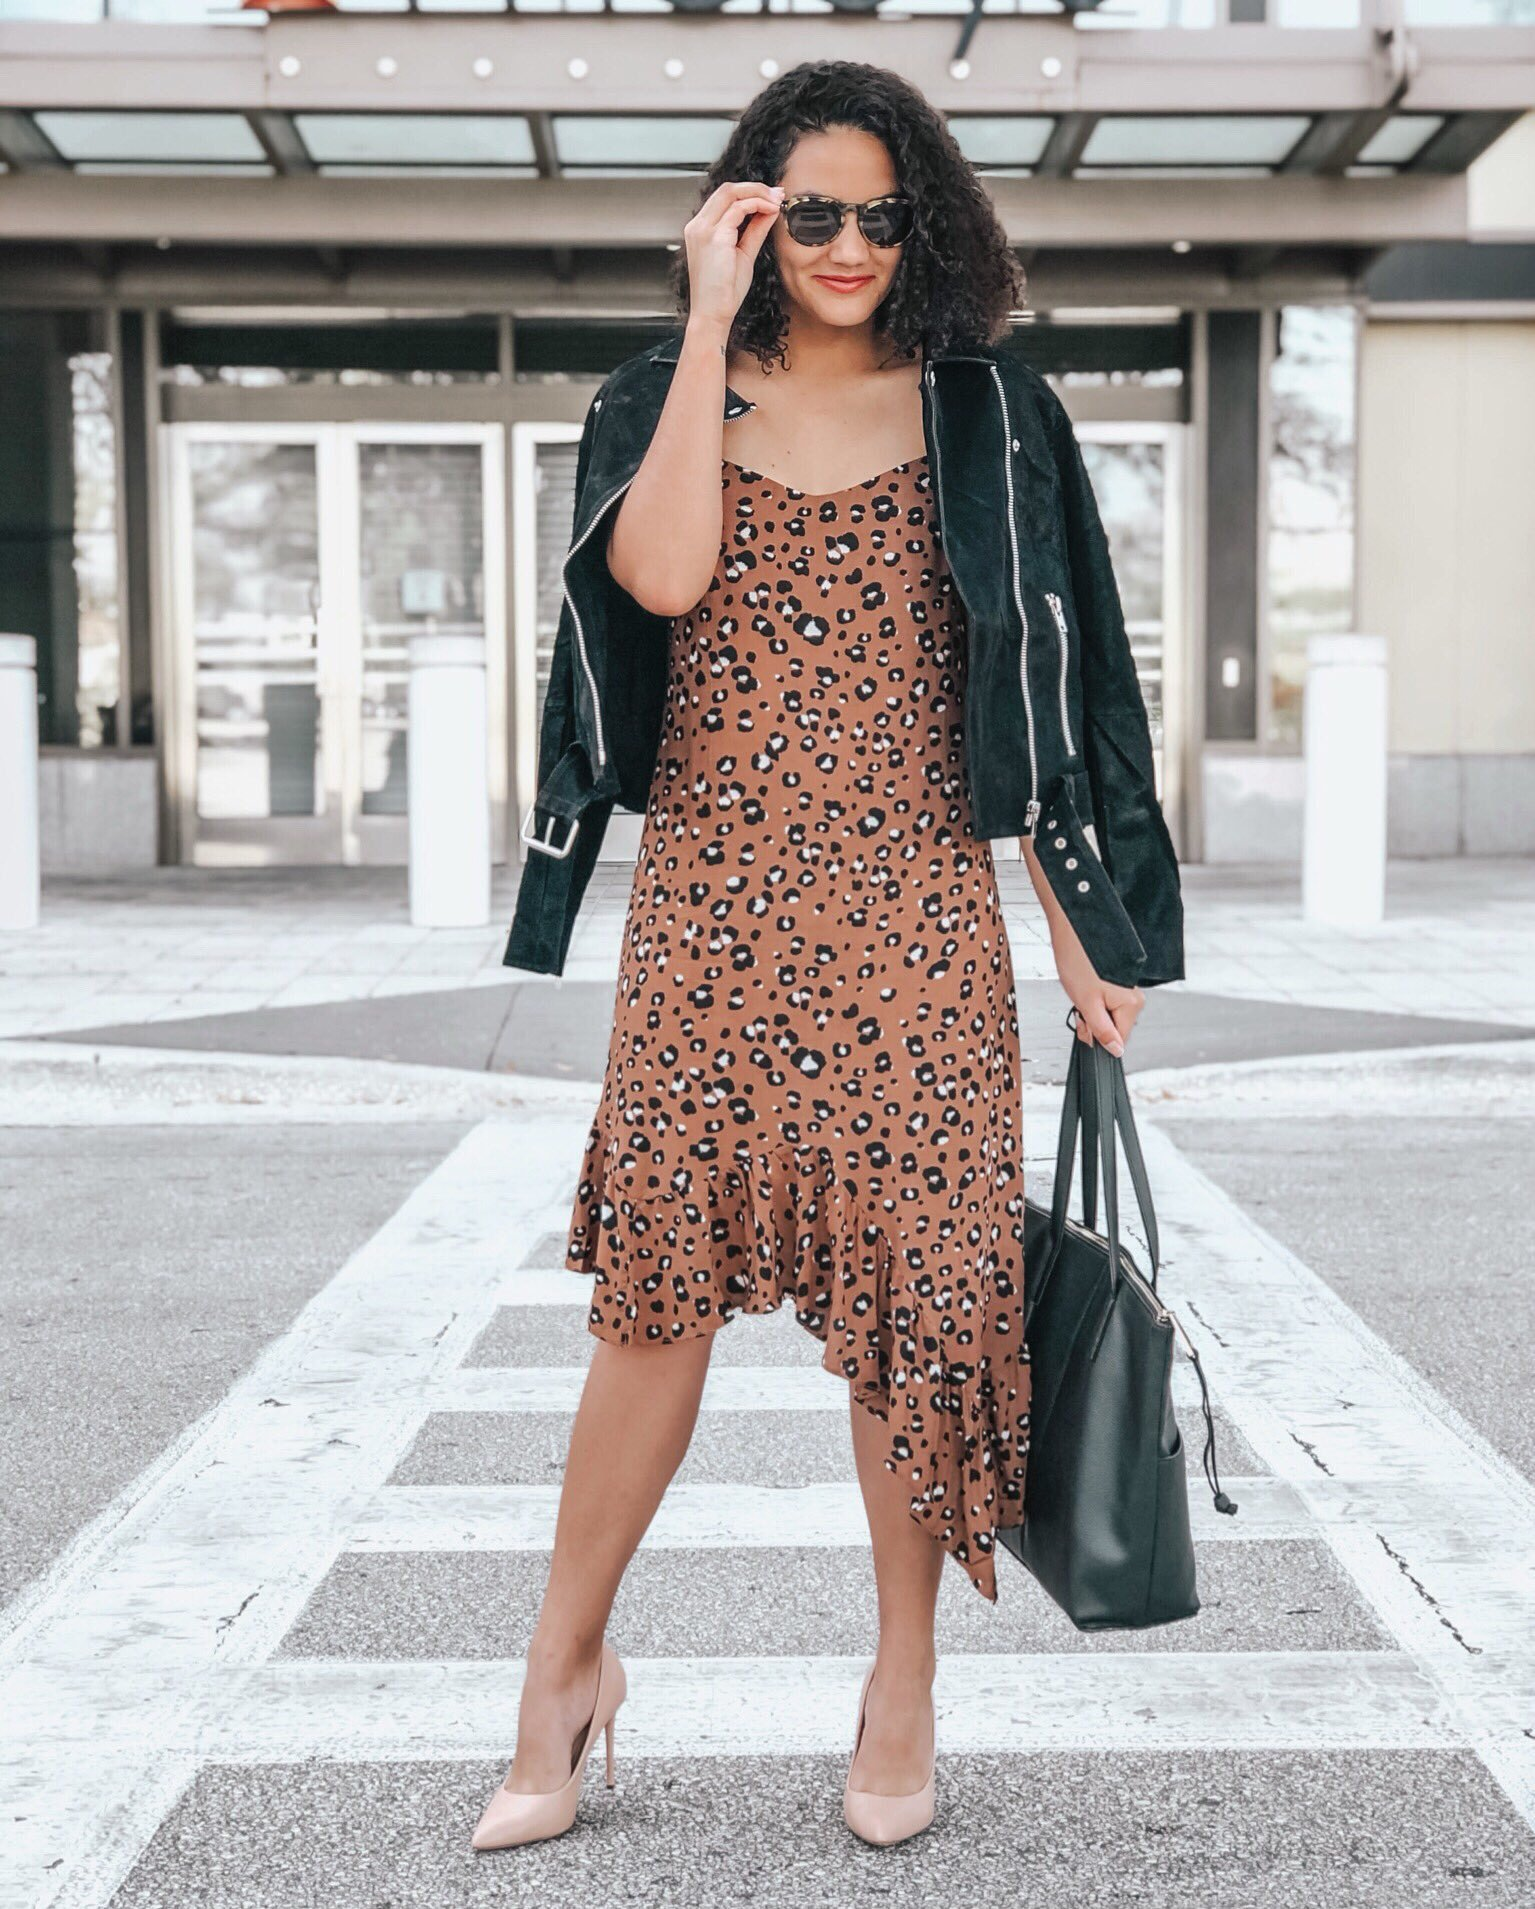 Asymmetrical Leopard print dress, Black moto jacket, black tote bag, and beige heels.